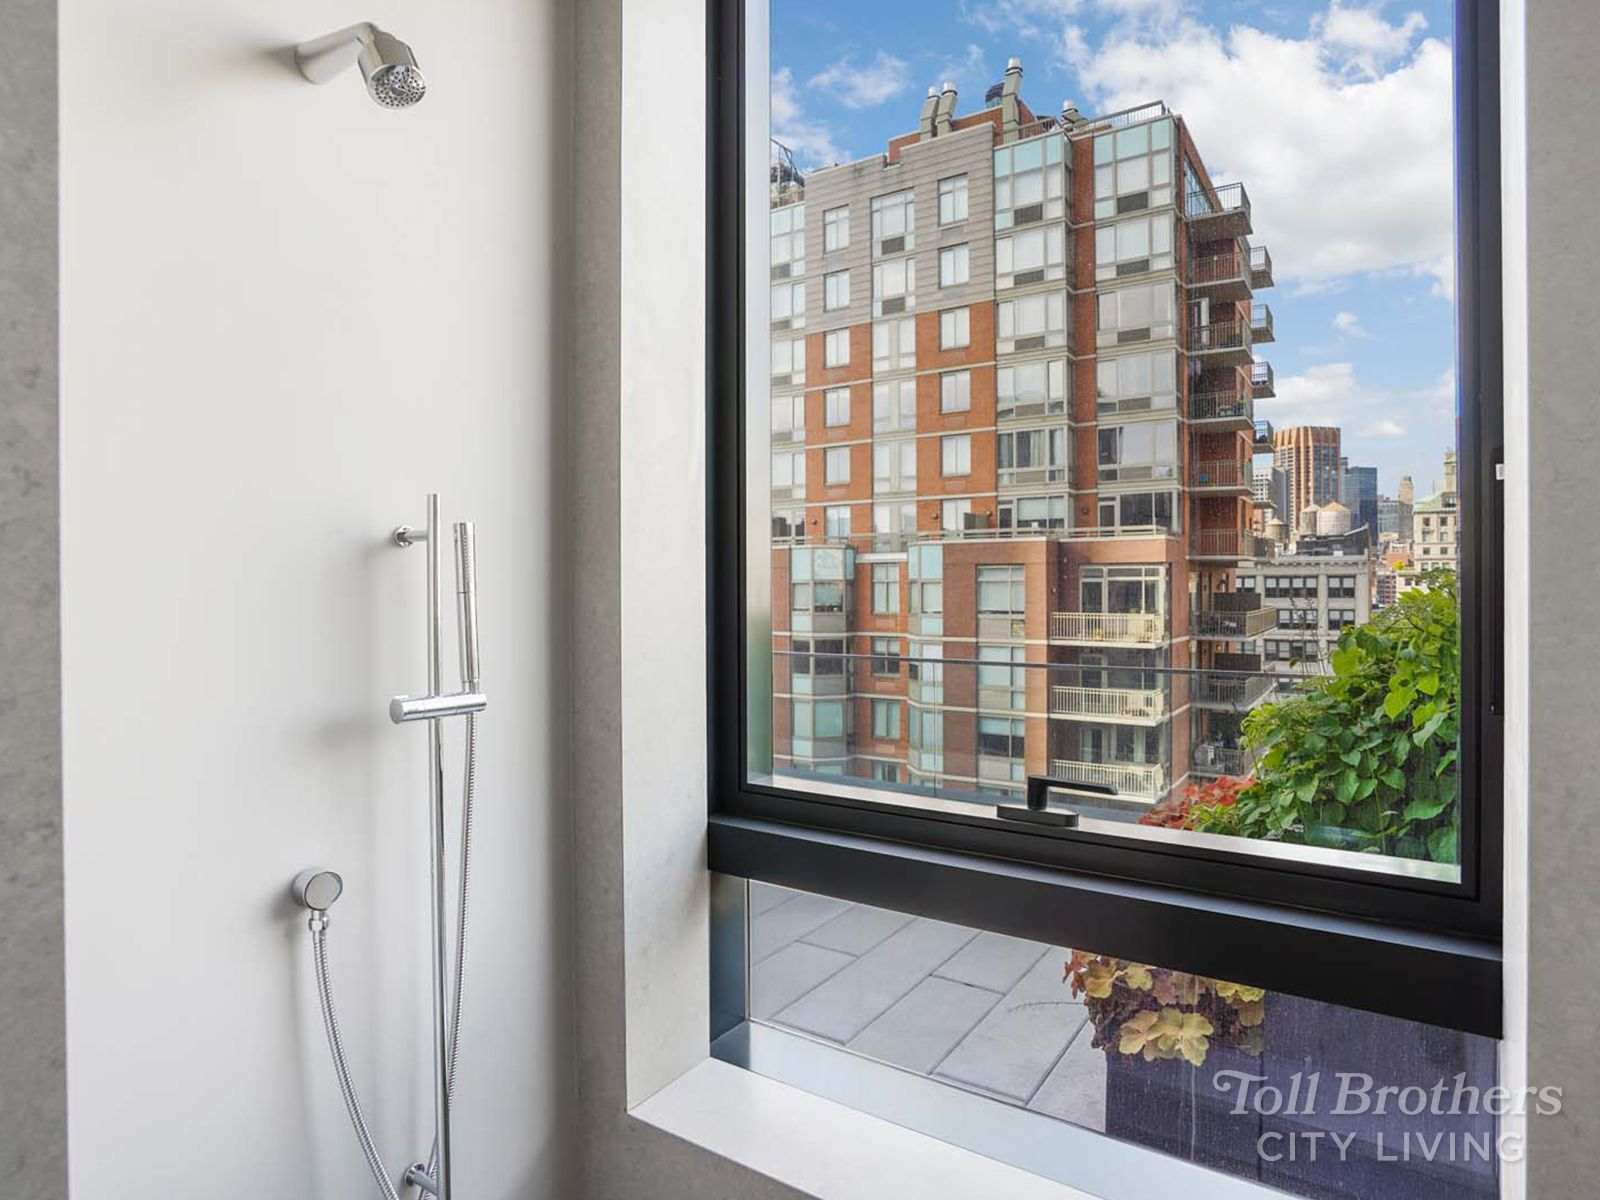 Bathroom featured in the N1302 By Toll Brothers in New York, NY